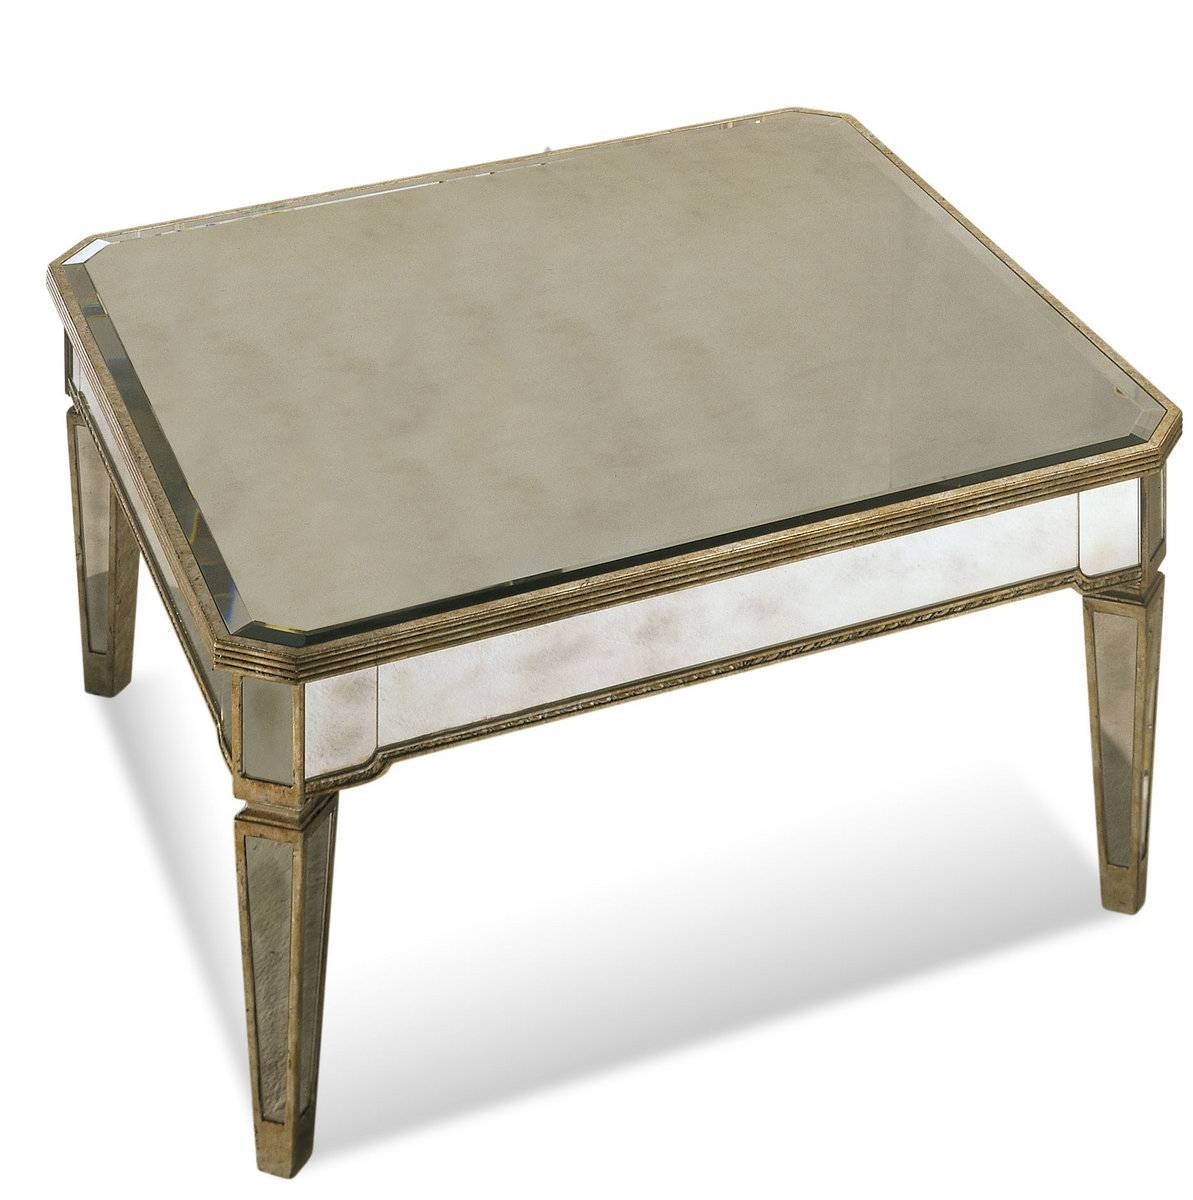 Borghese Mirrored Square Cocktail Table (Antique Mirror & Silver with regard to Antique Mirrored Coffee Tables (Image 8 of 30)